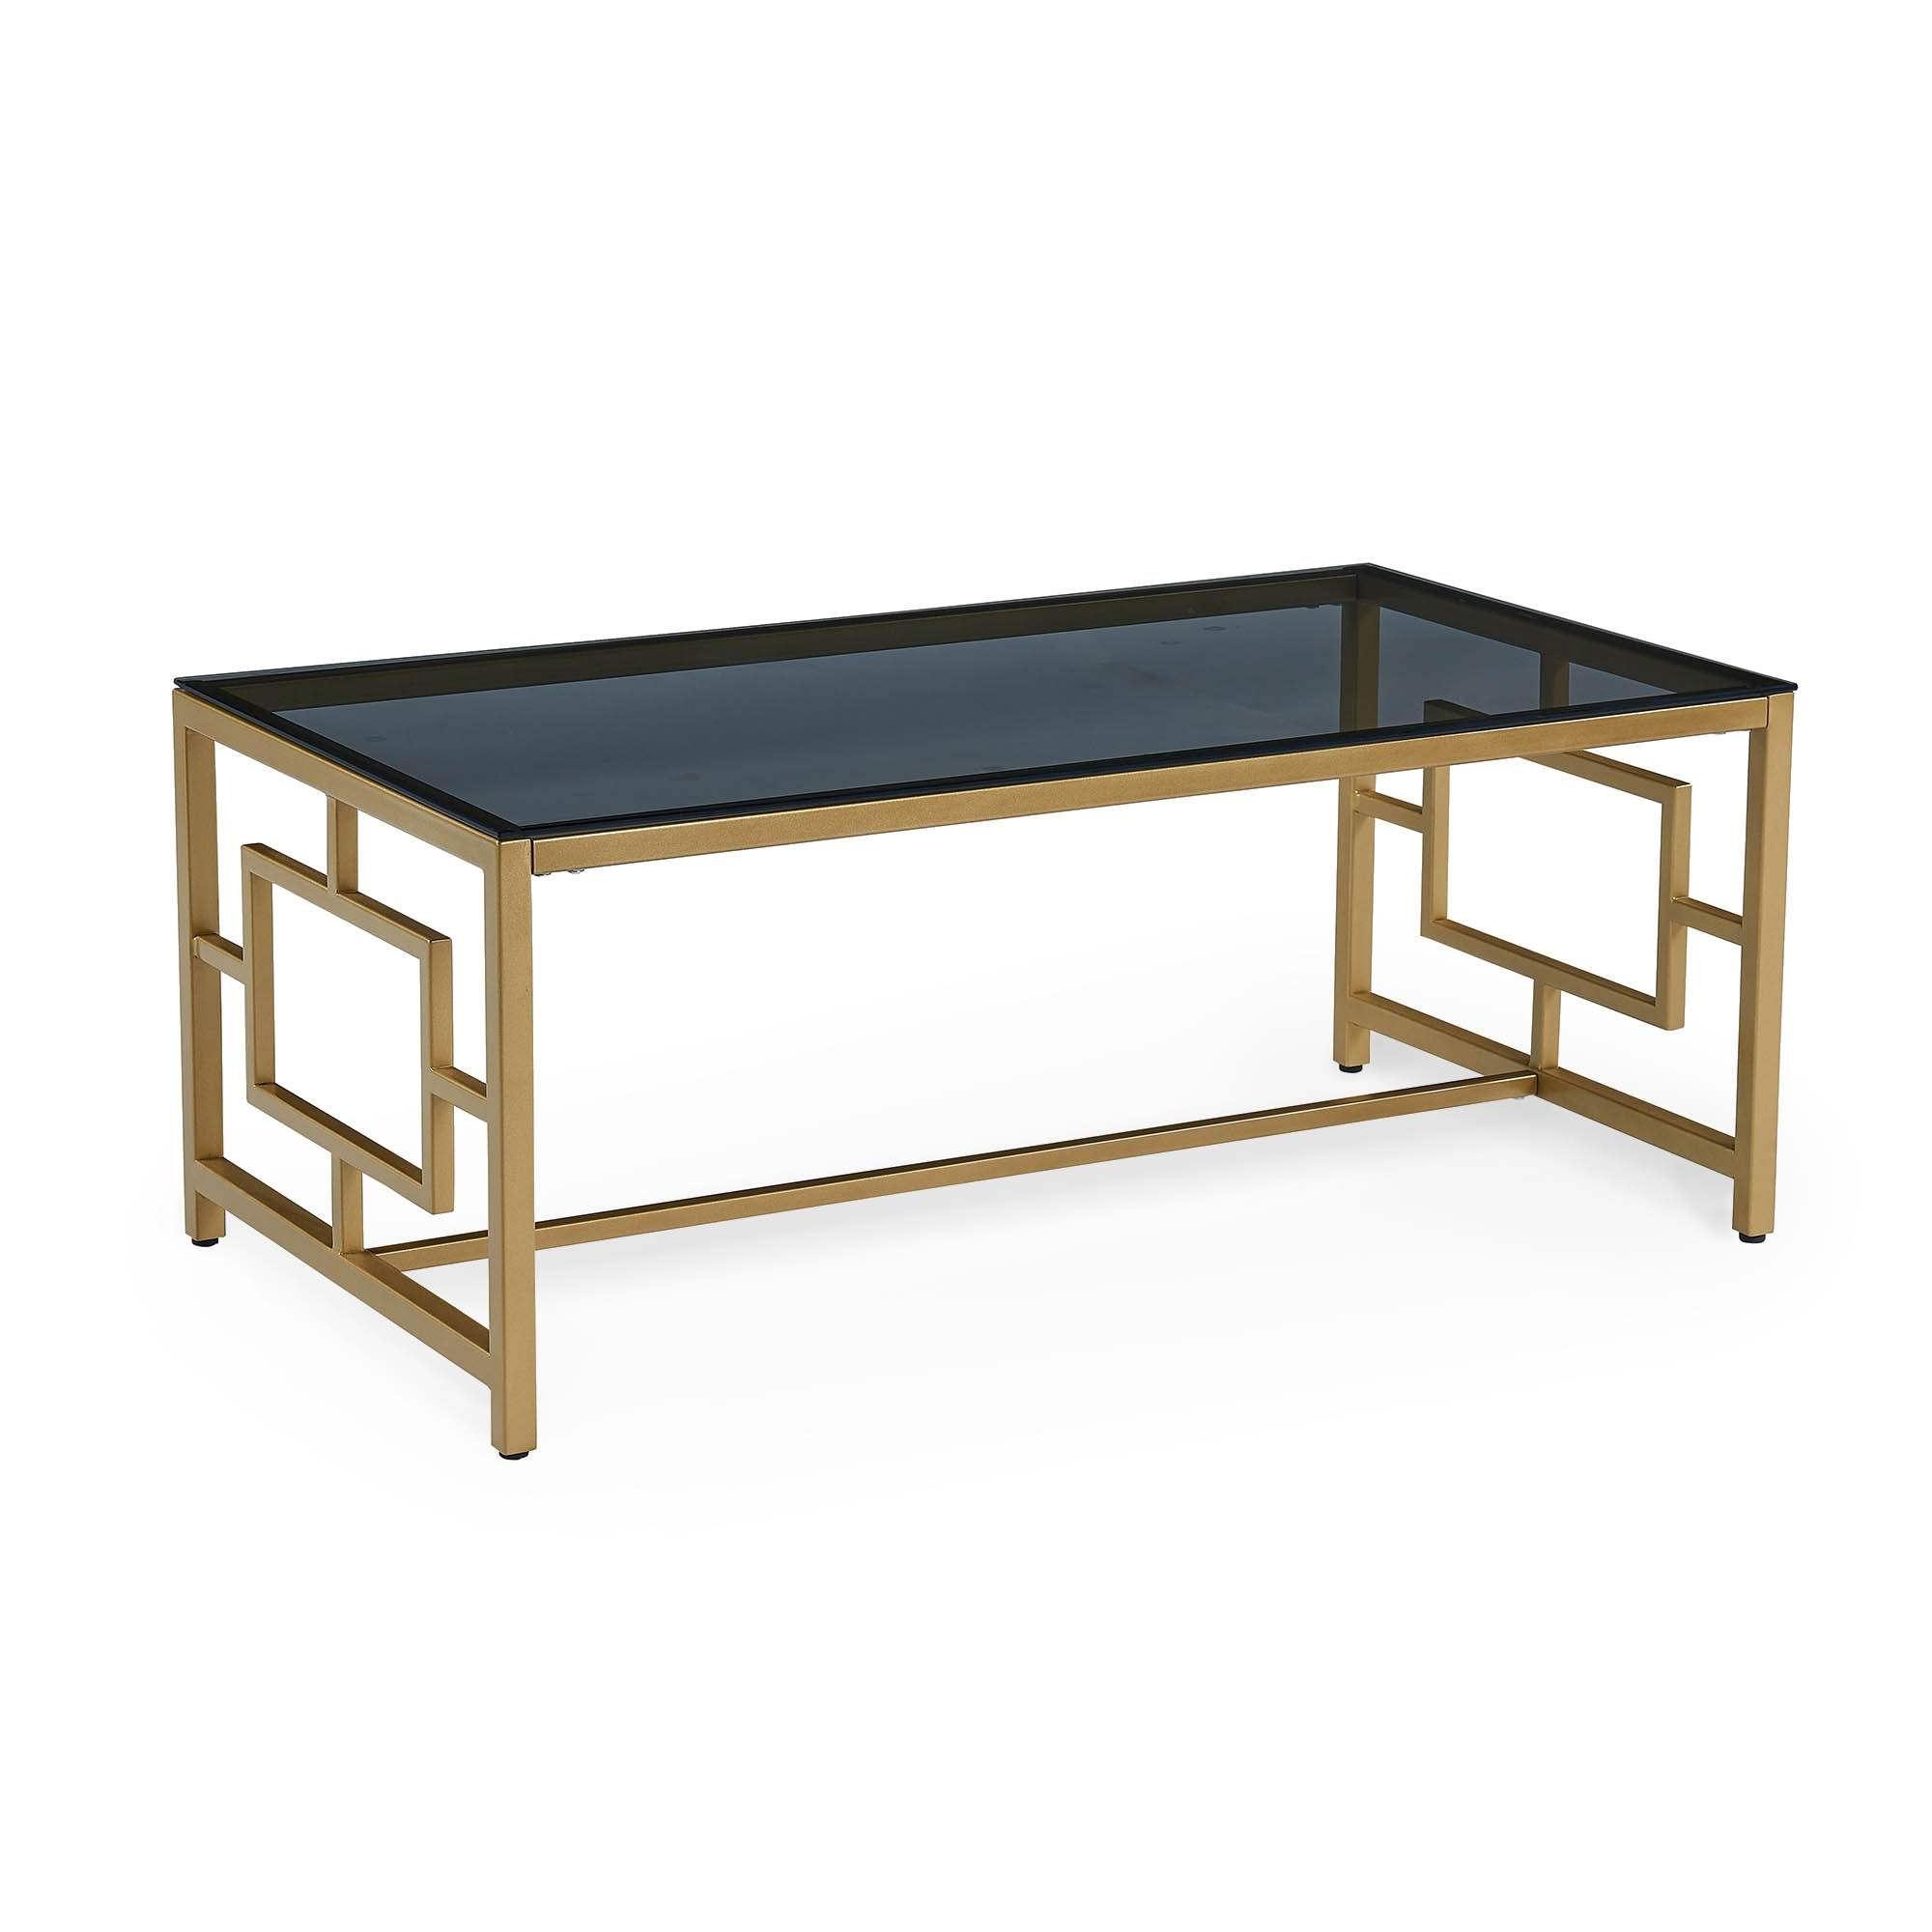 Table Basse Design En Verre Noir Et Metal Dore Rectangulaire Pablo